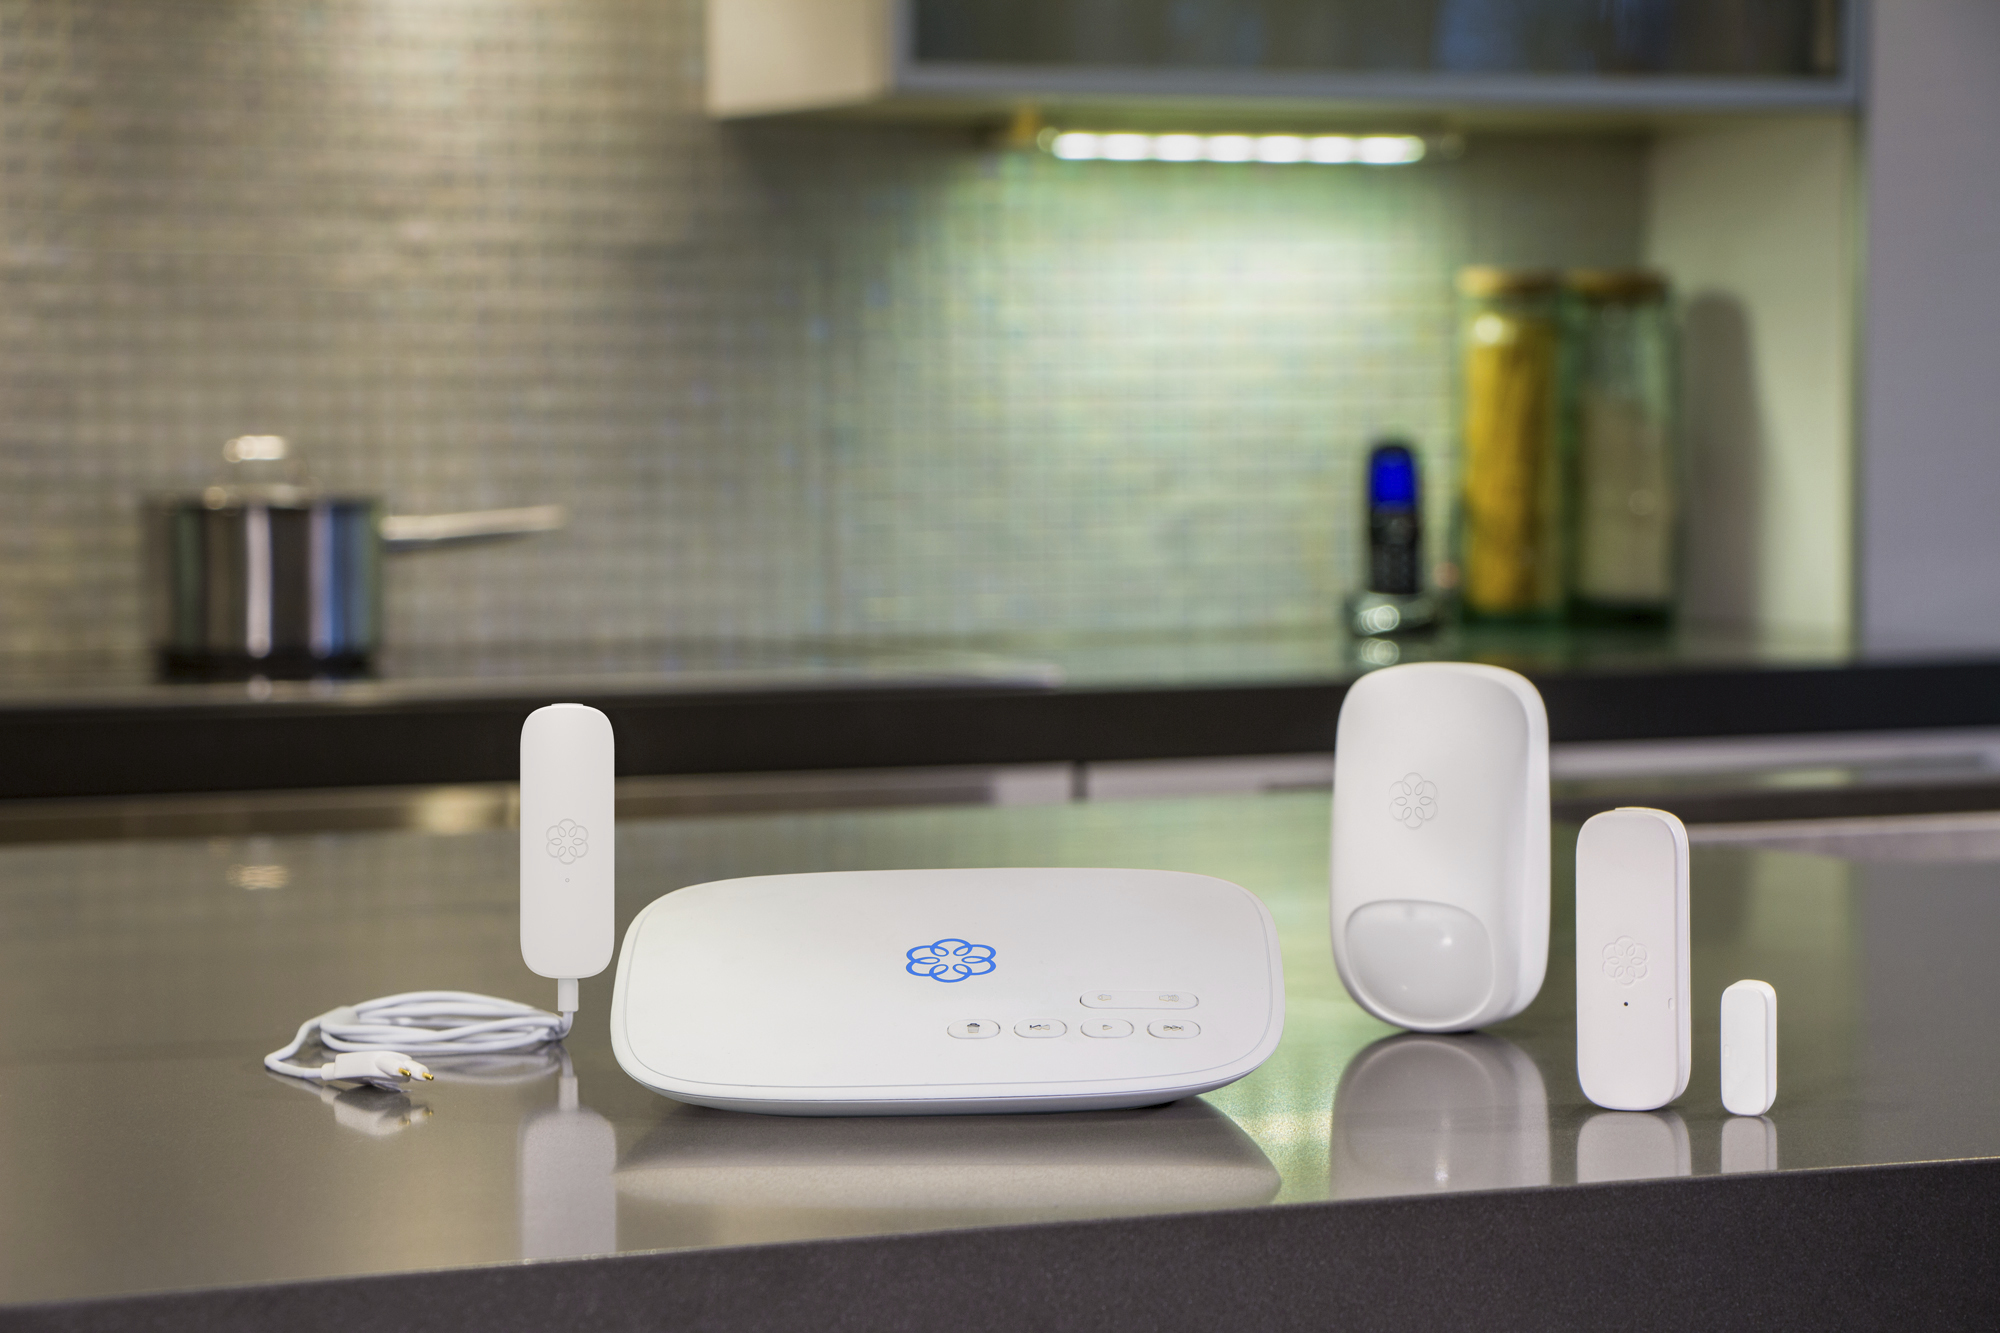 Ooma Home Monitoring System